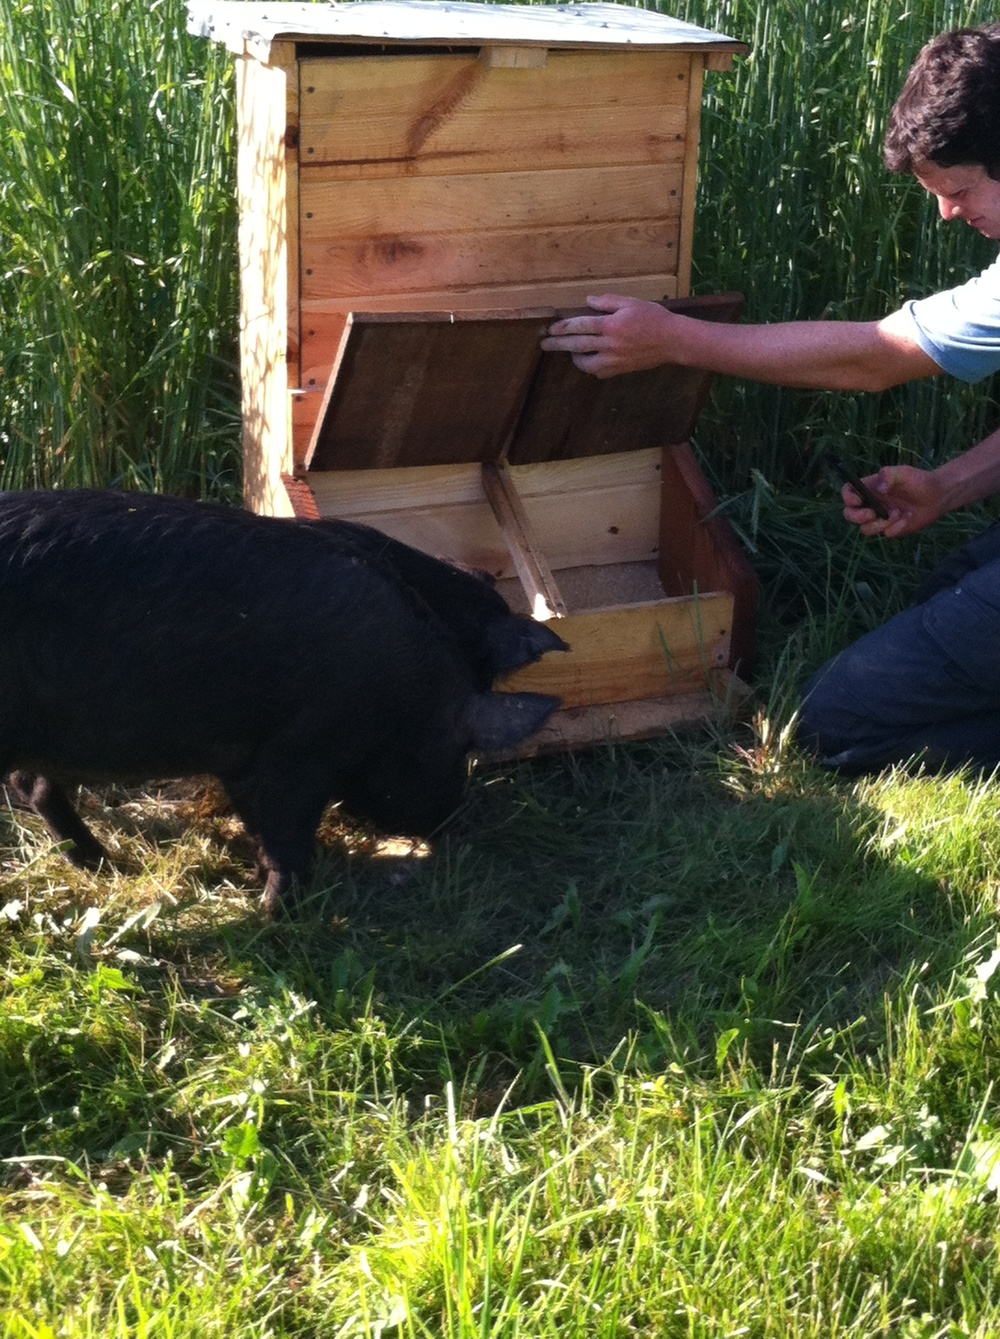 Eric teaching the pigs how to use the feeder. They're pretty smart animals and figured it out after about one day. Now they can't get enough of it